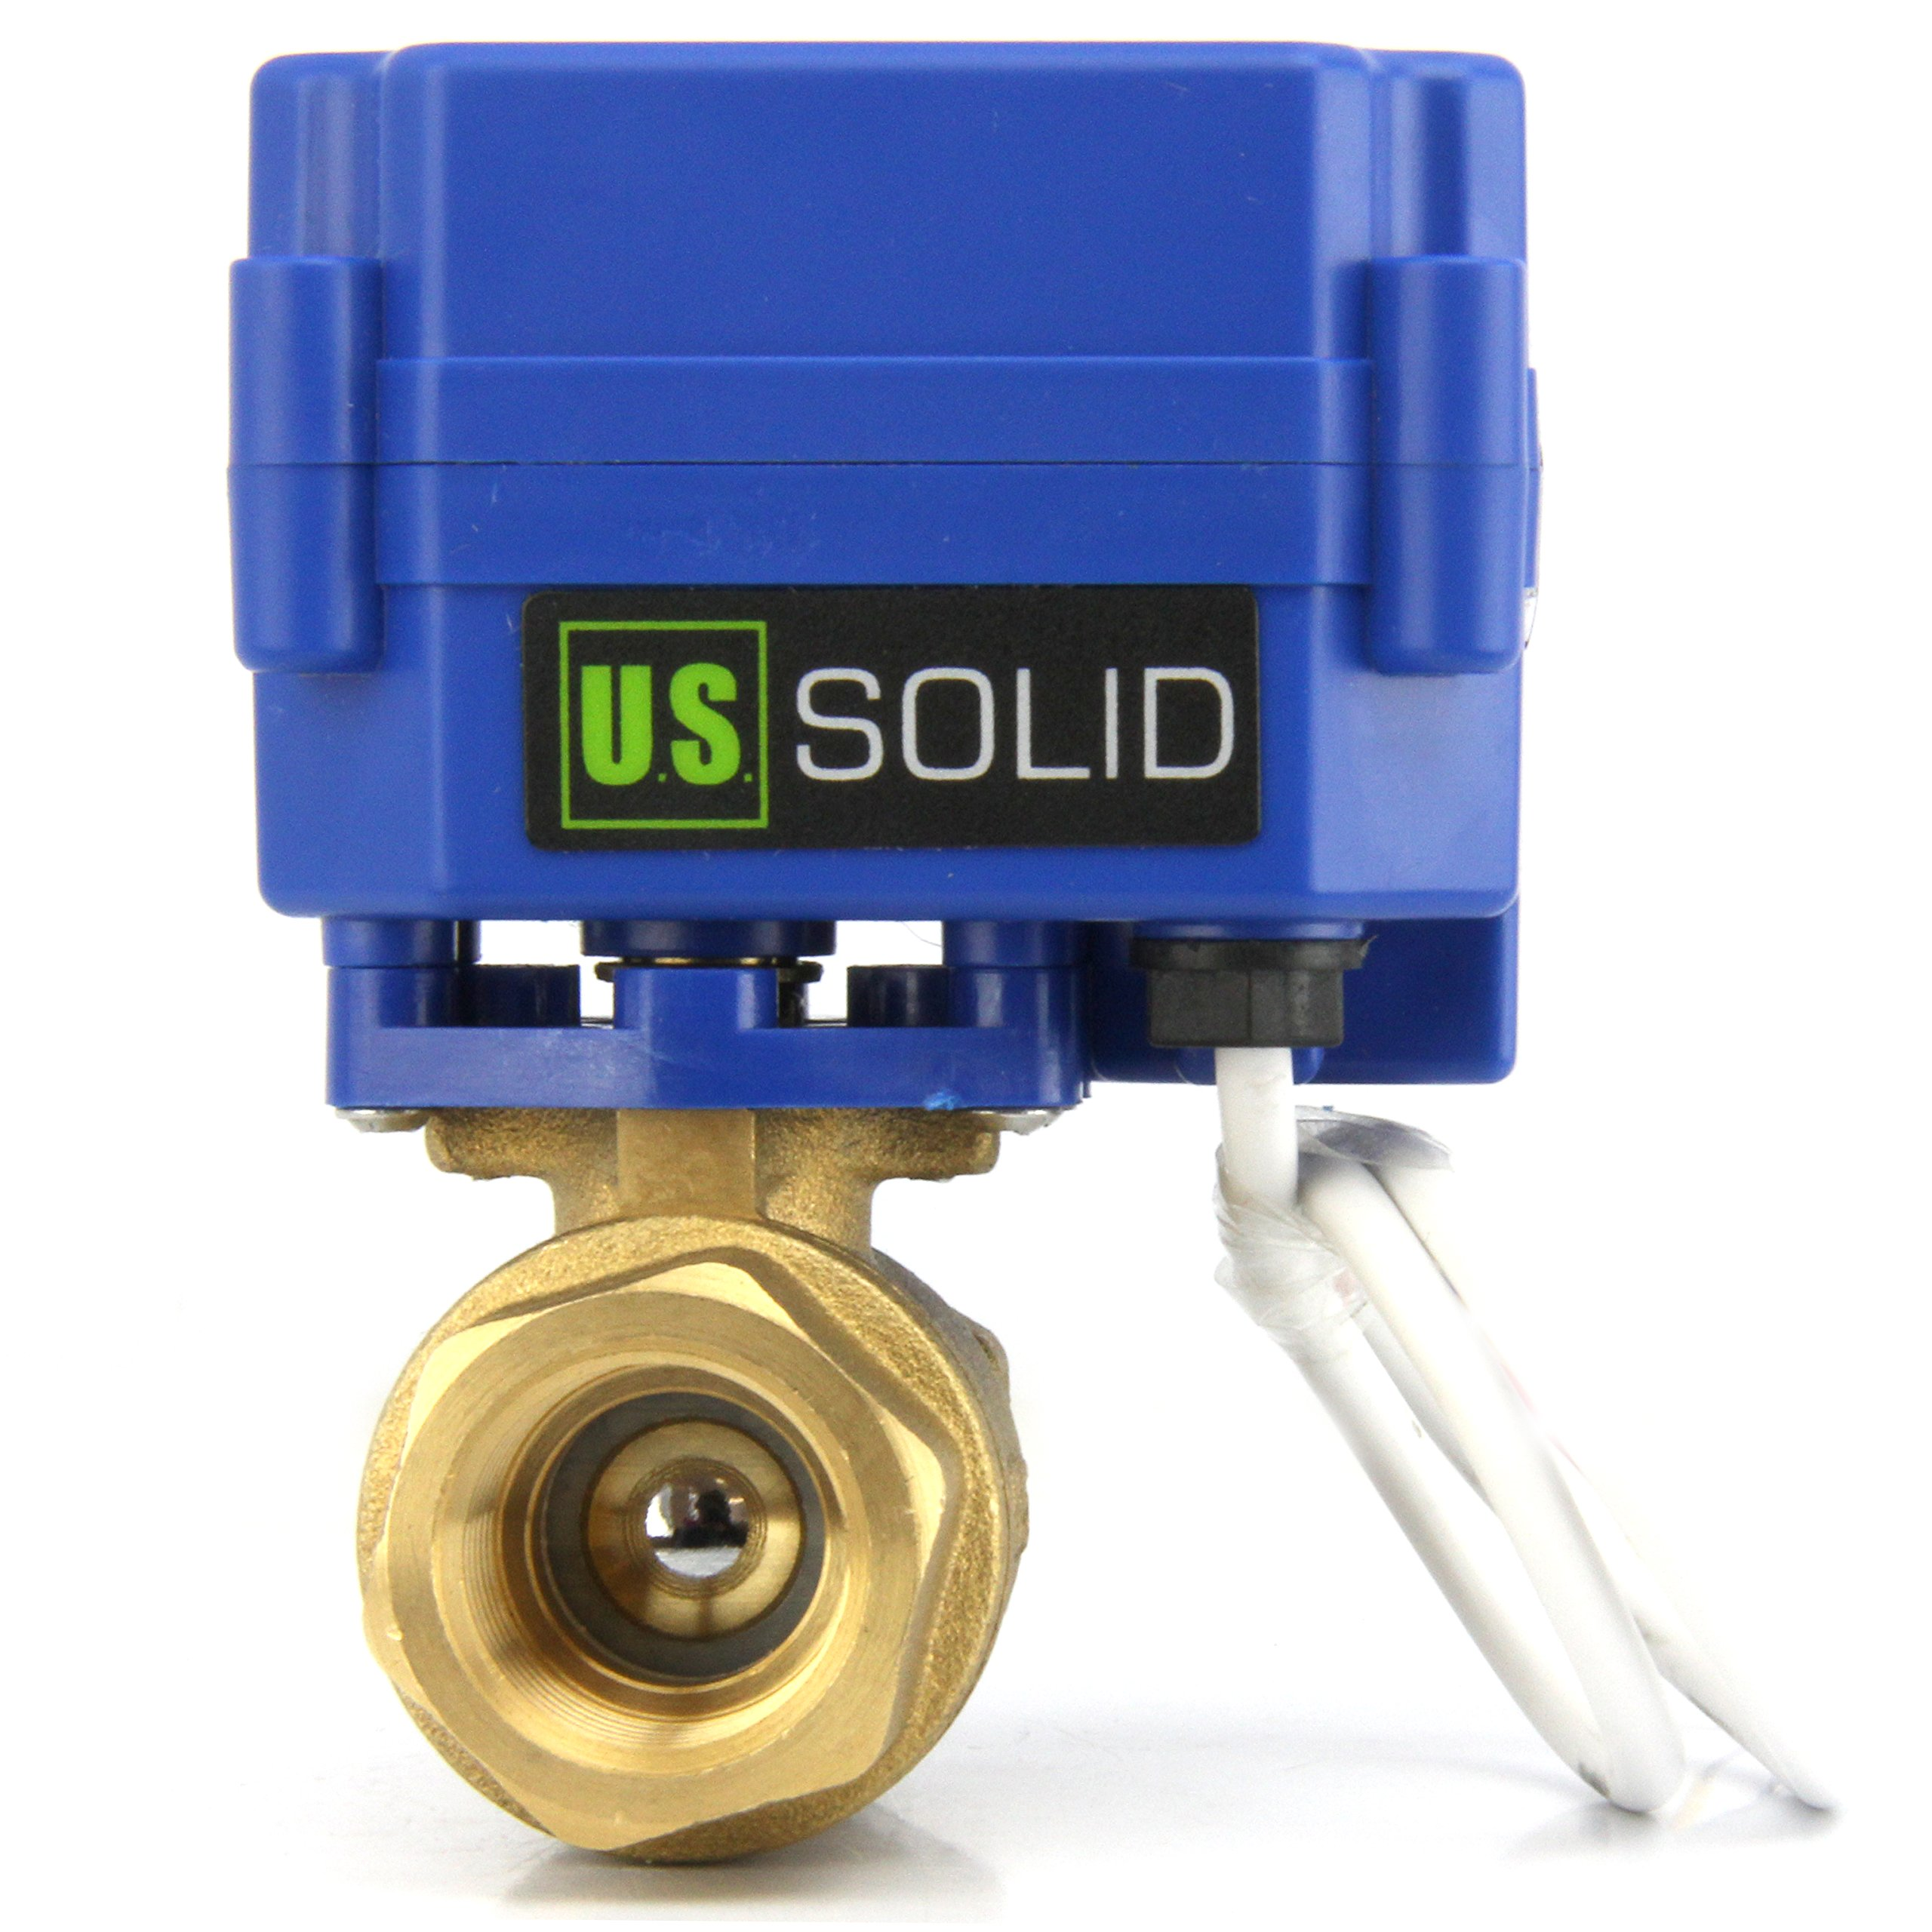 Motorized Ball Valve- 3/4'' Brass Electrical Ball Valve with Standard Port, 9-24V AC/DC and 3 Wire Setup by U.S. Solid …